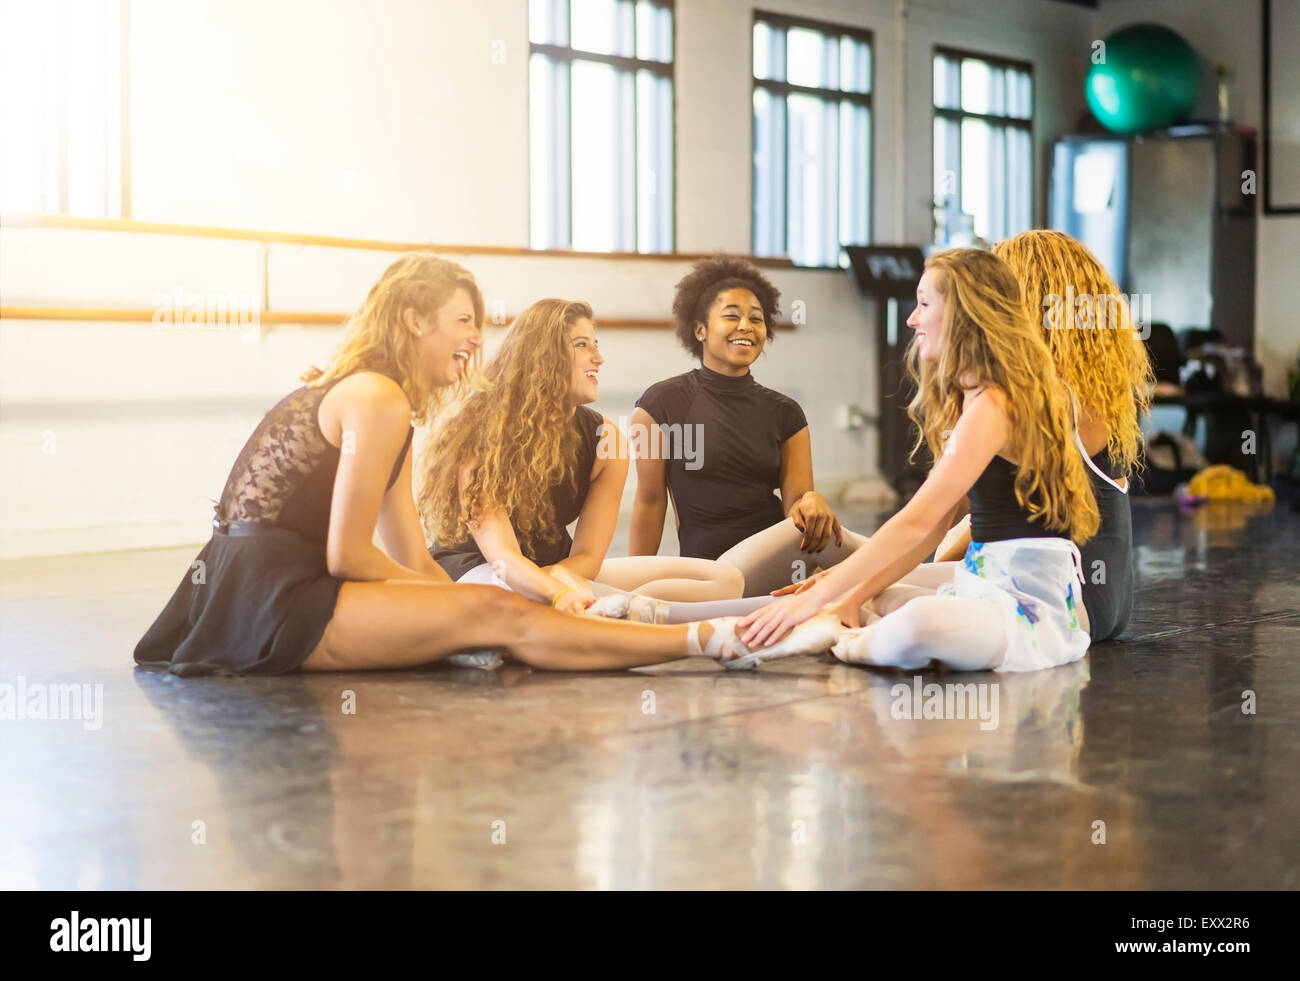 Young women in dance studio - Stock Image